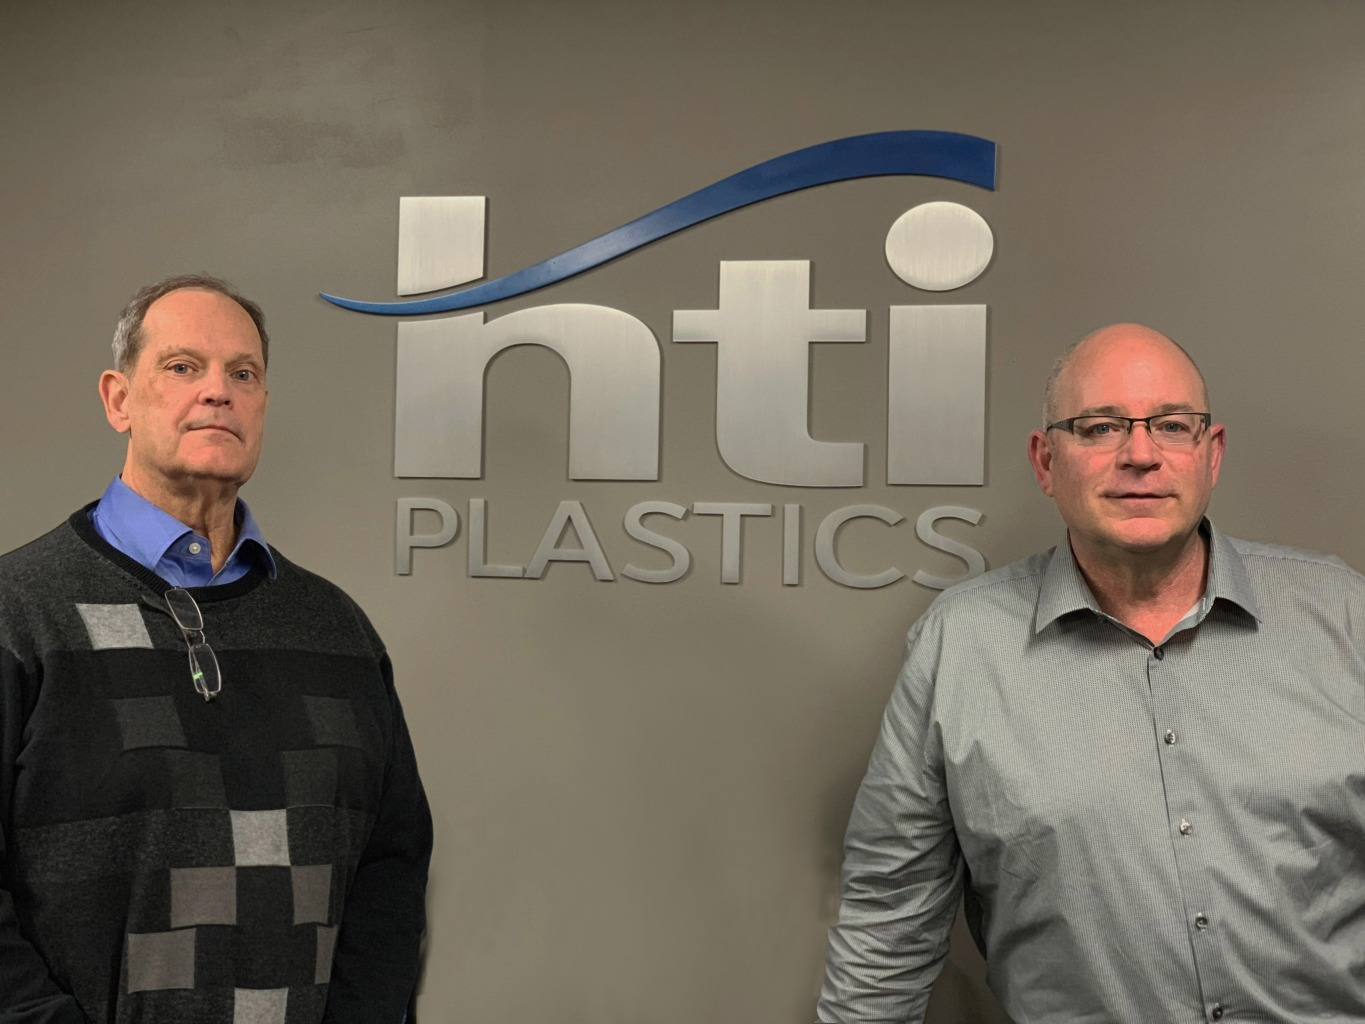 HTI Plastics Hires David Carvell and John Renda as Sales Managers